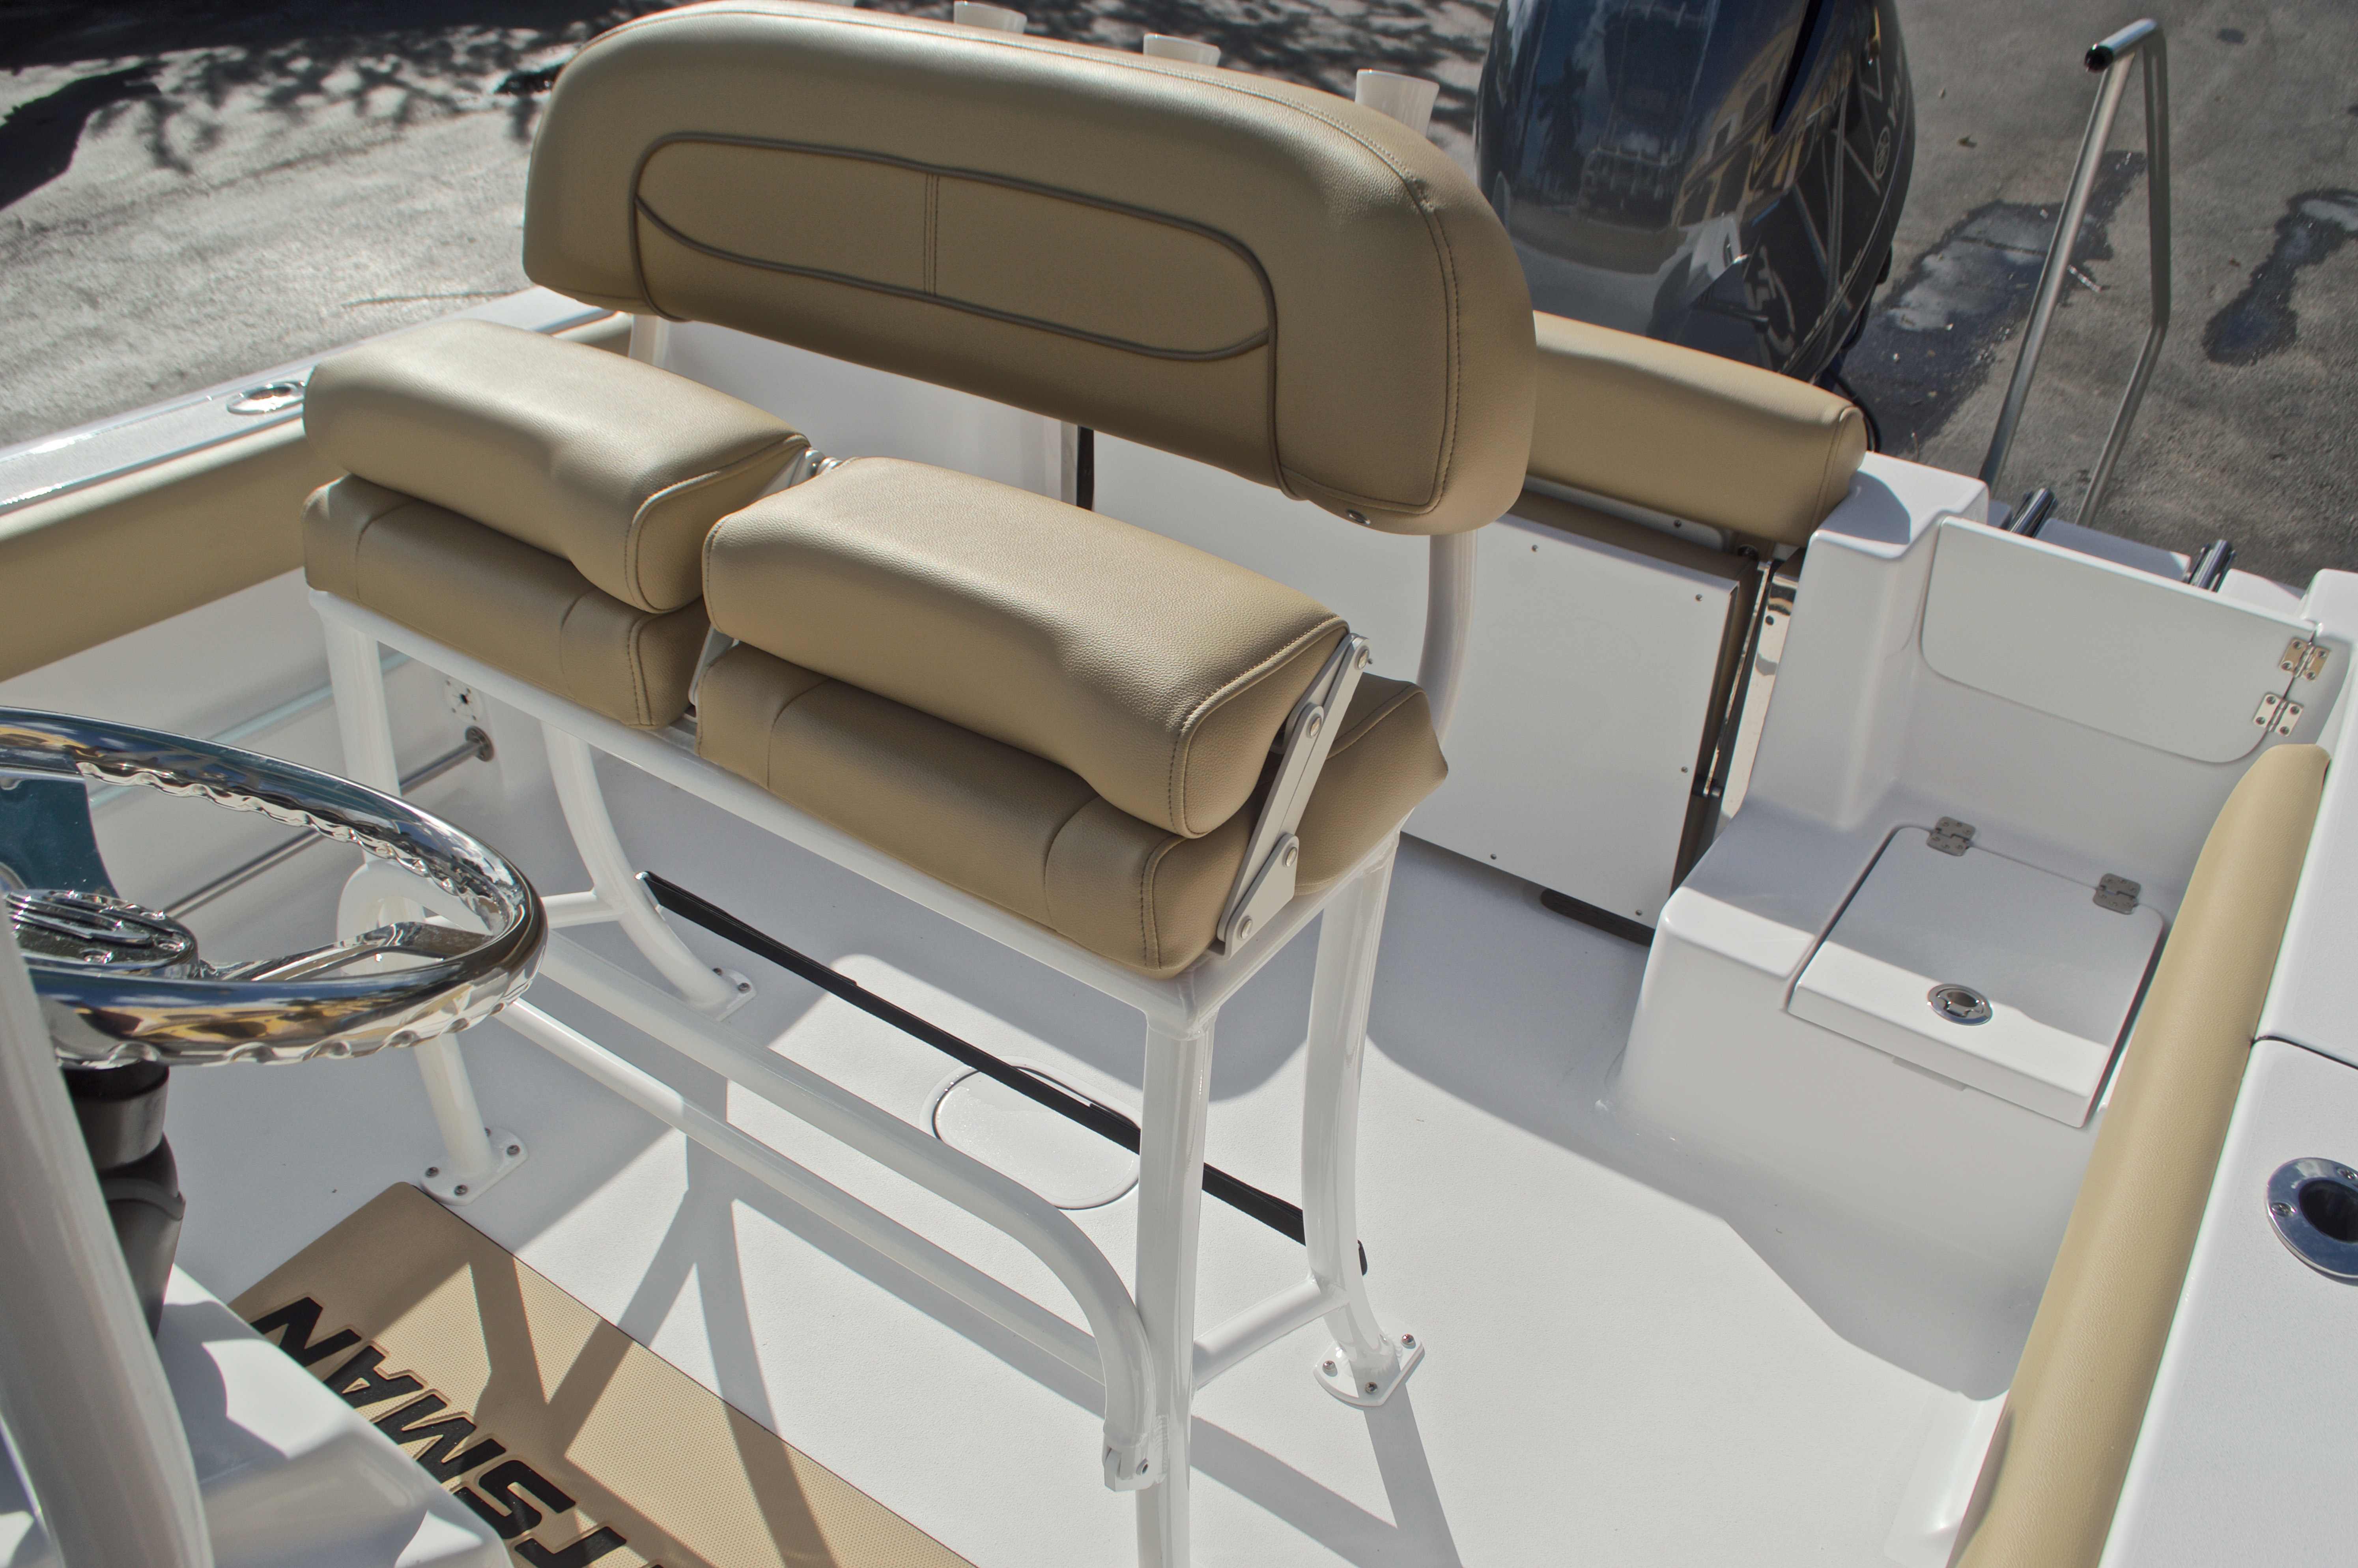 Thumbnail 26 for New 2017 Sportsman Open 212 Center Console boat for sale in West Palm Beach, FL